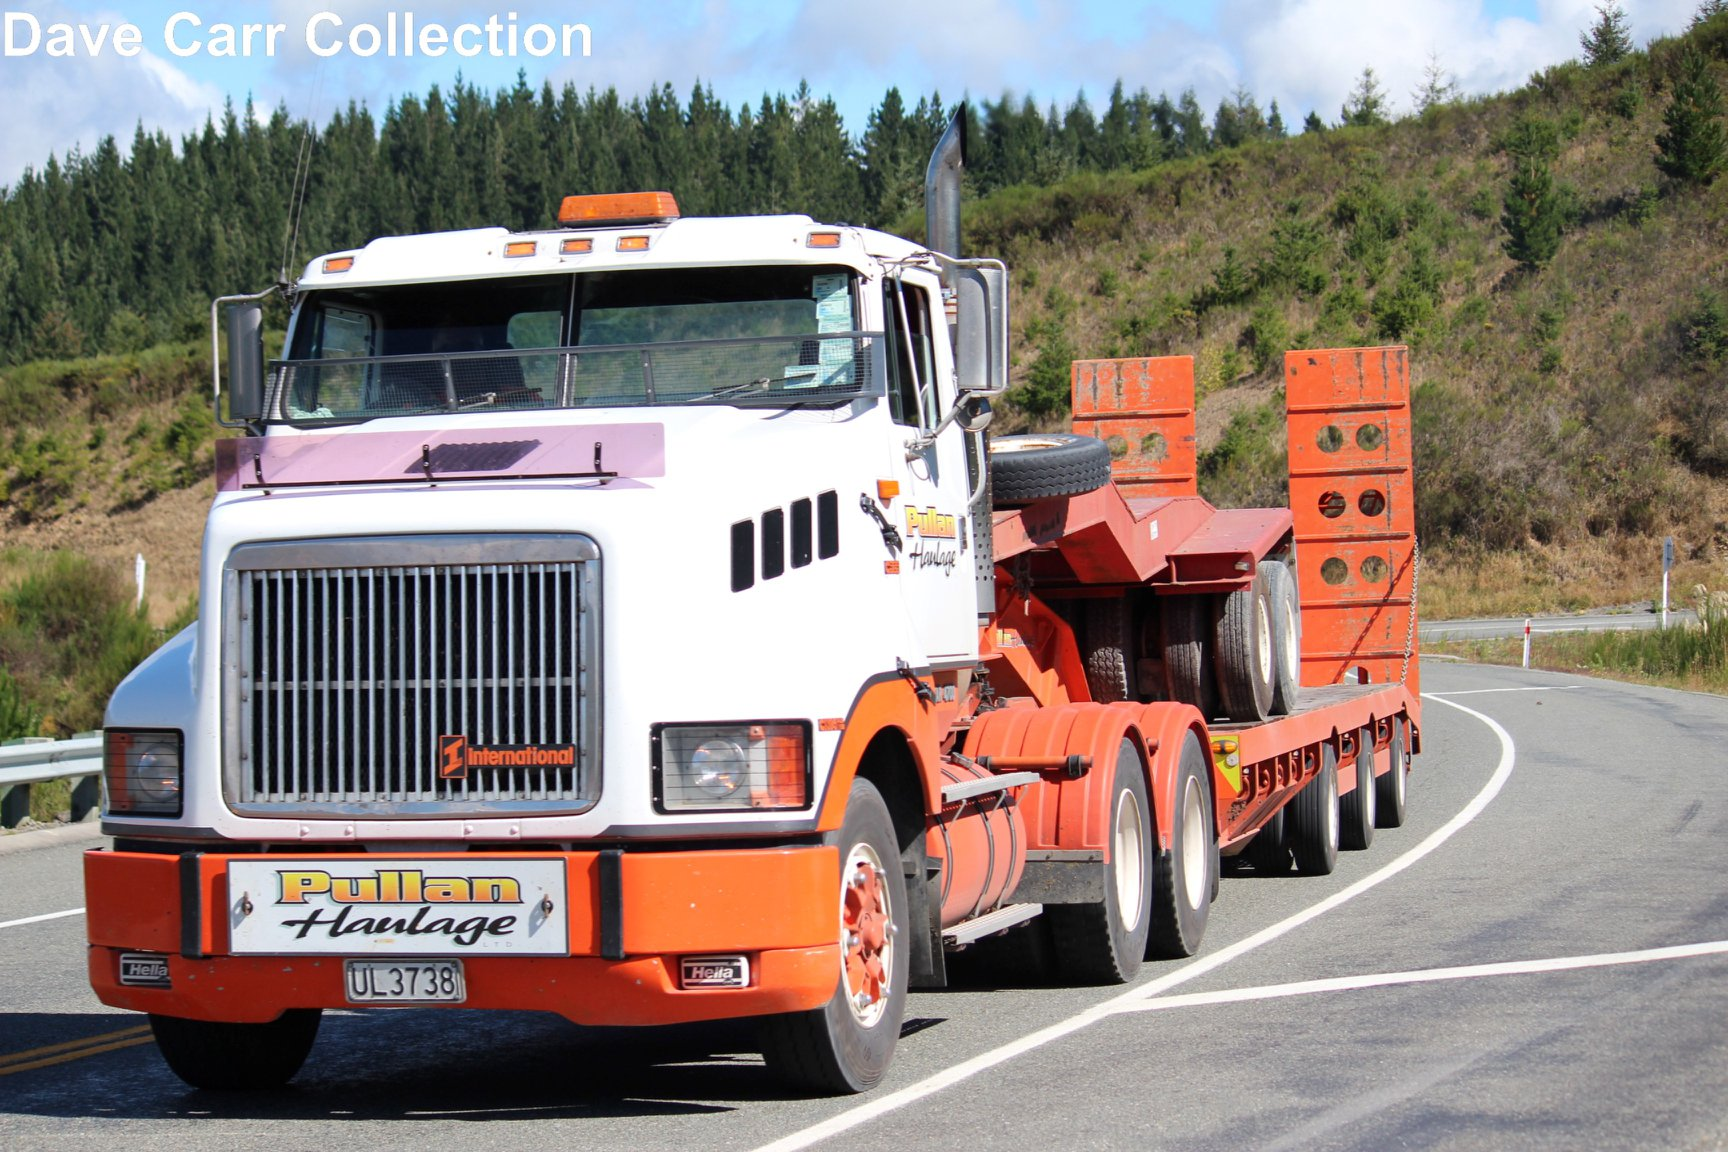 Pullan-Haulage--Grant-Grubby-Durham---Spooners-Range-18-March-2014-